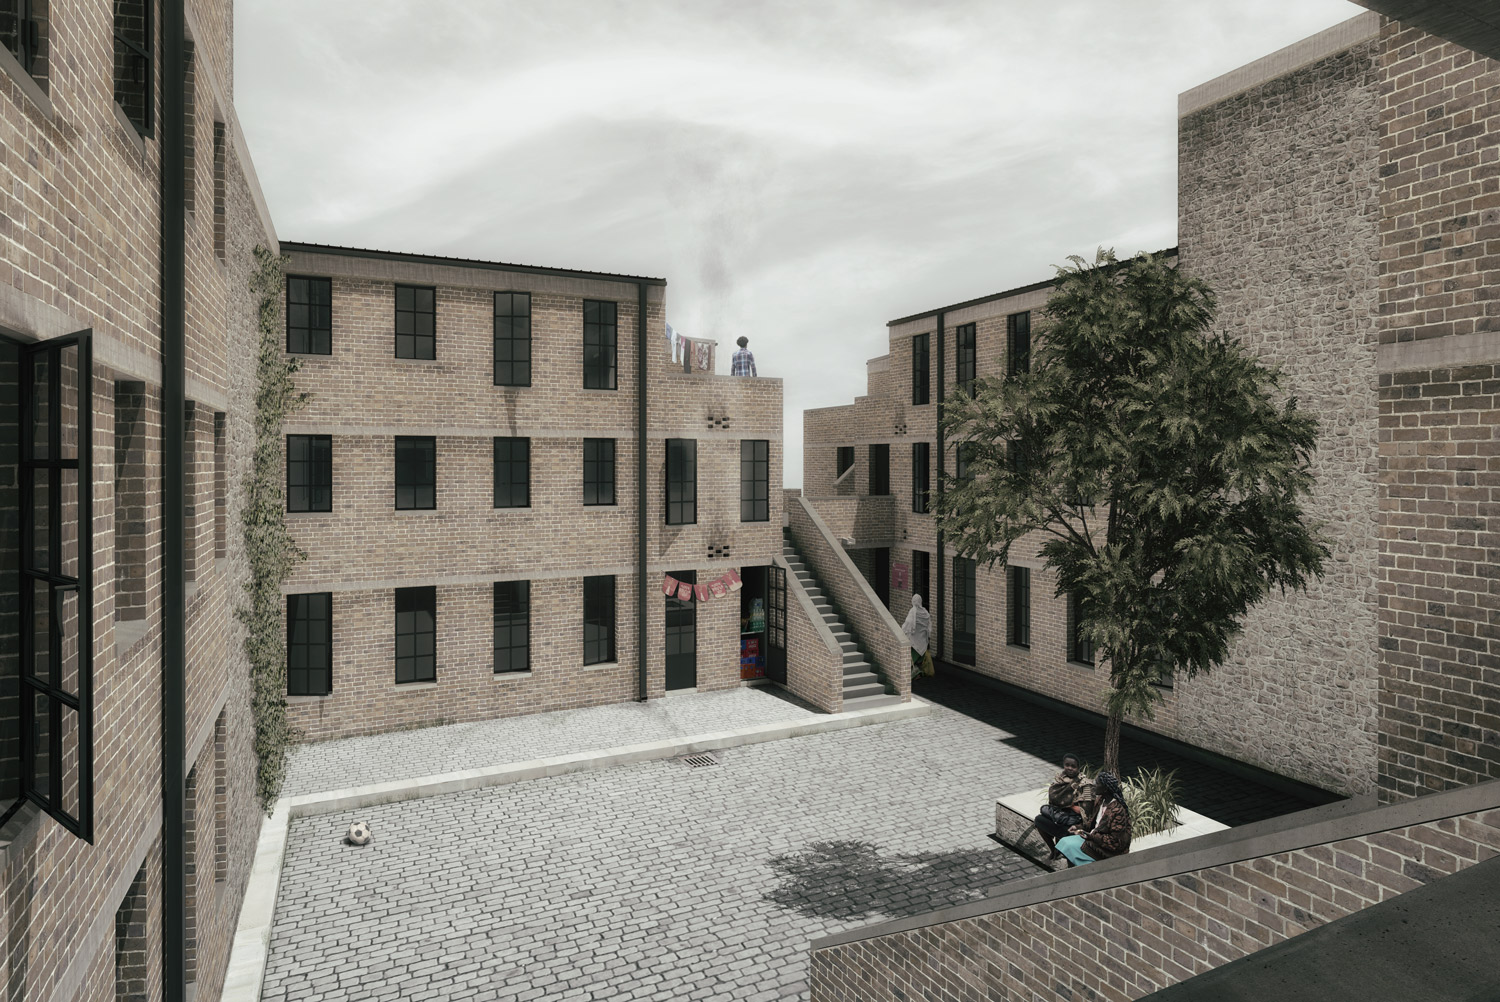 Courtyard Visualization (Disler/Rolvering)